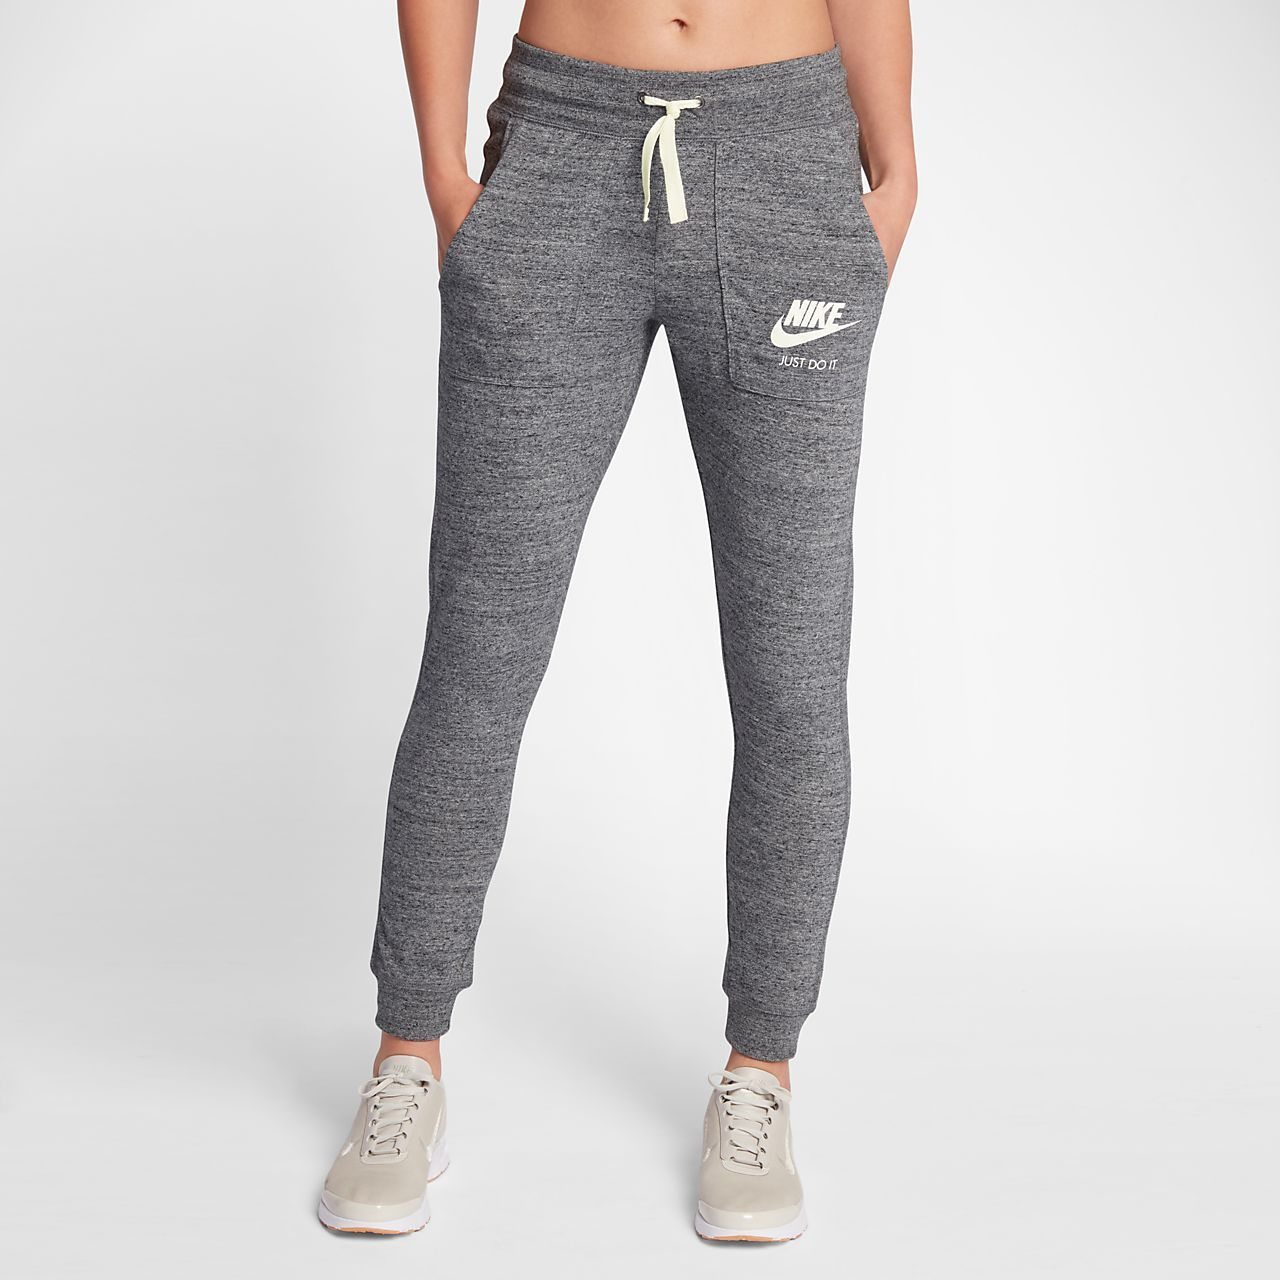 ad642730c4ef1 Sportswear Gym Vintage Women's Pants | my S T Y L E | Nike pants for ...